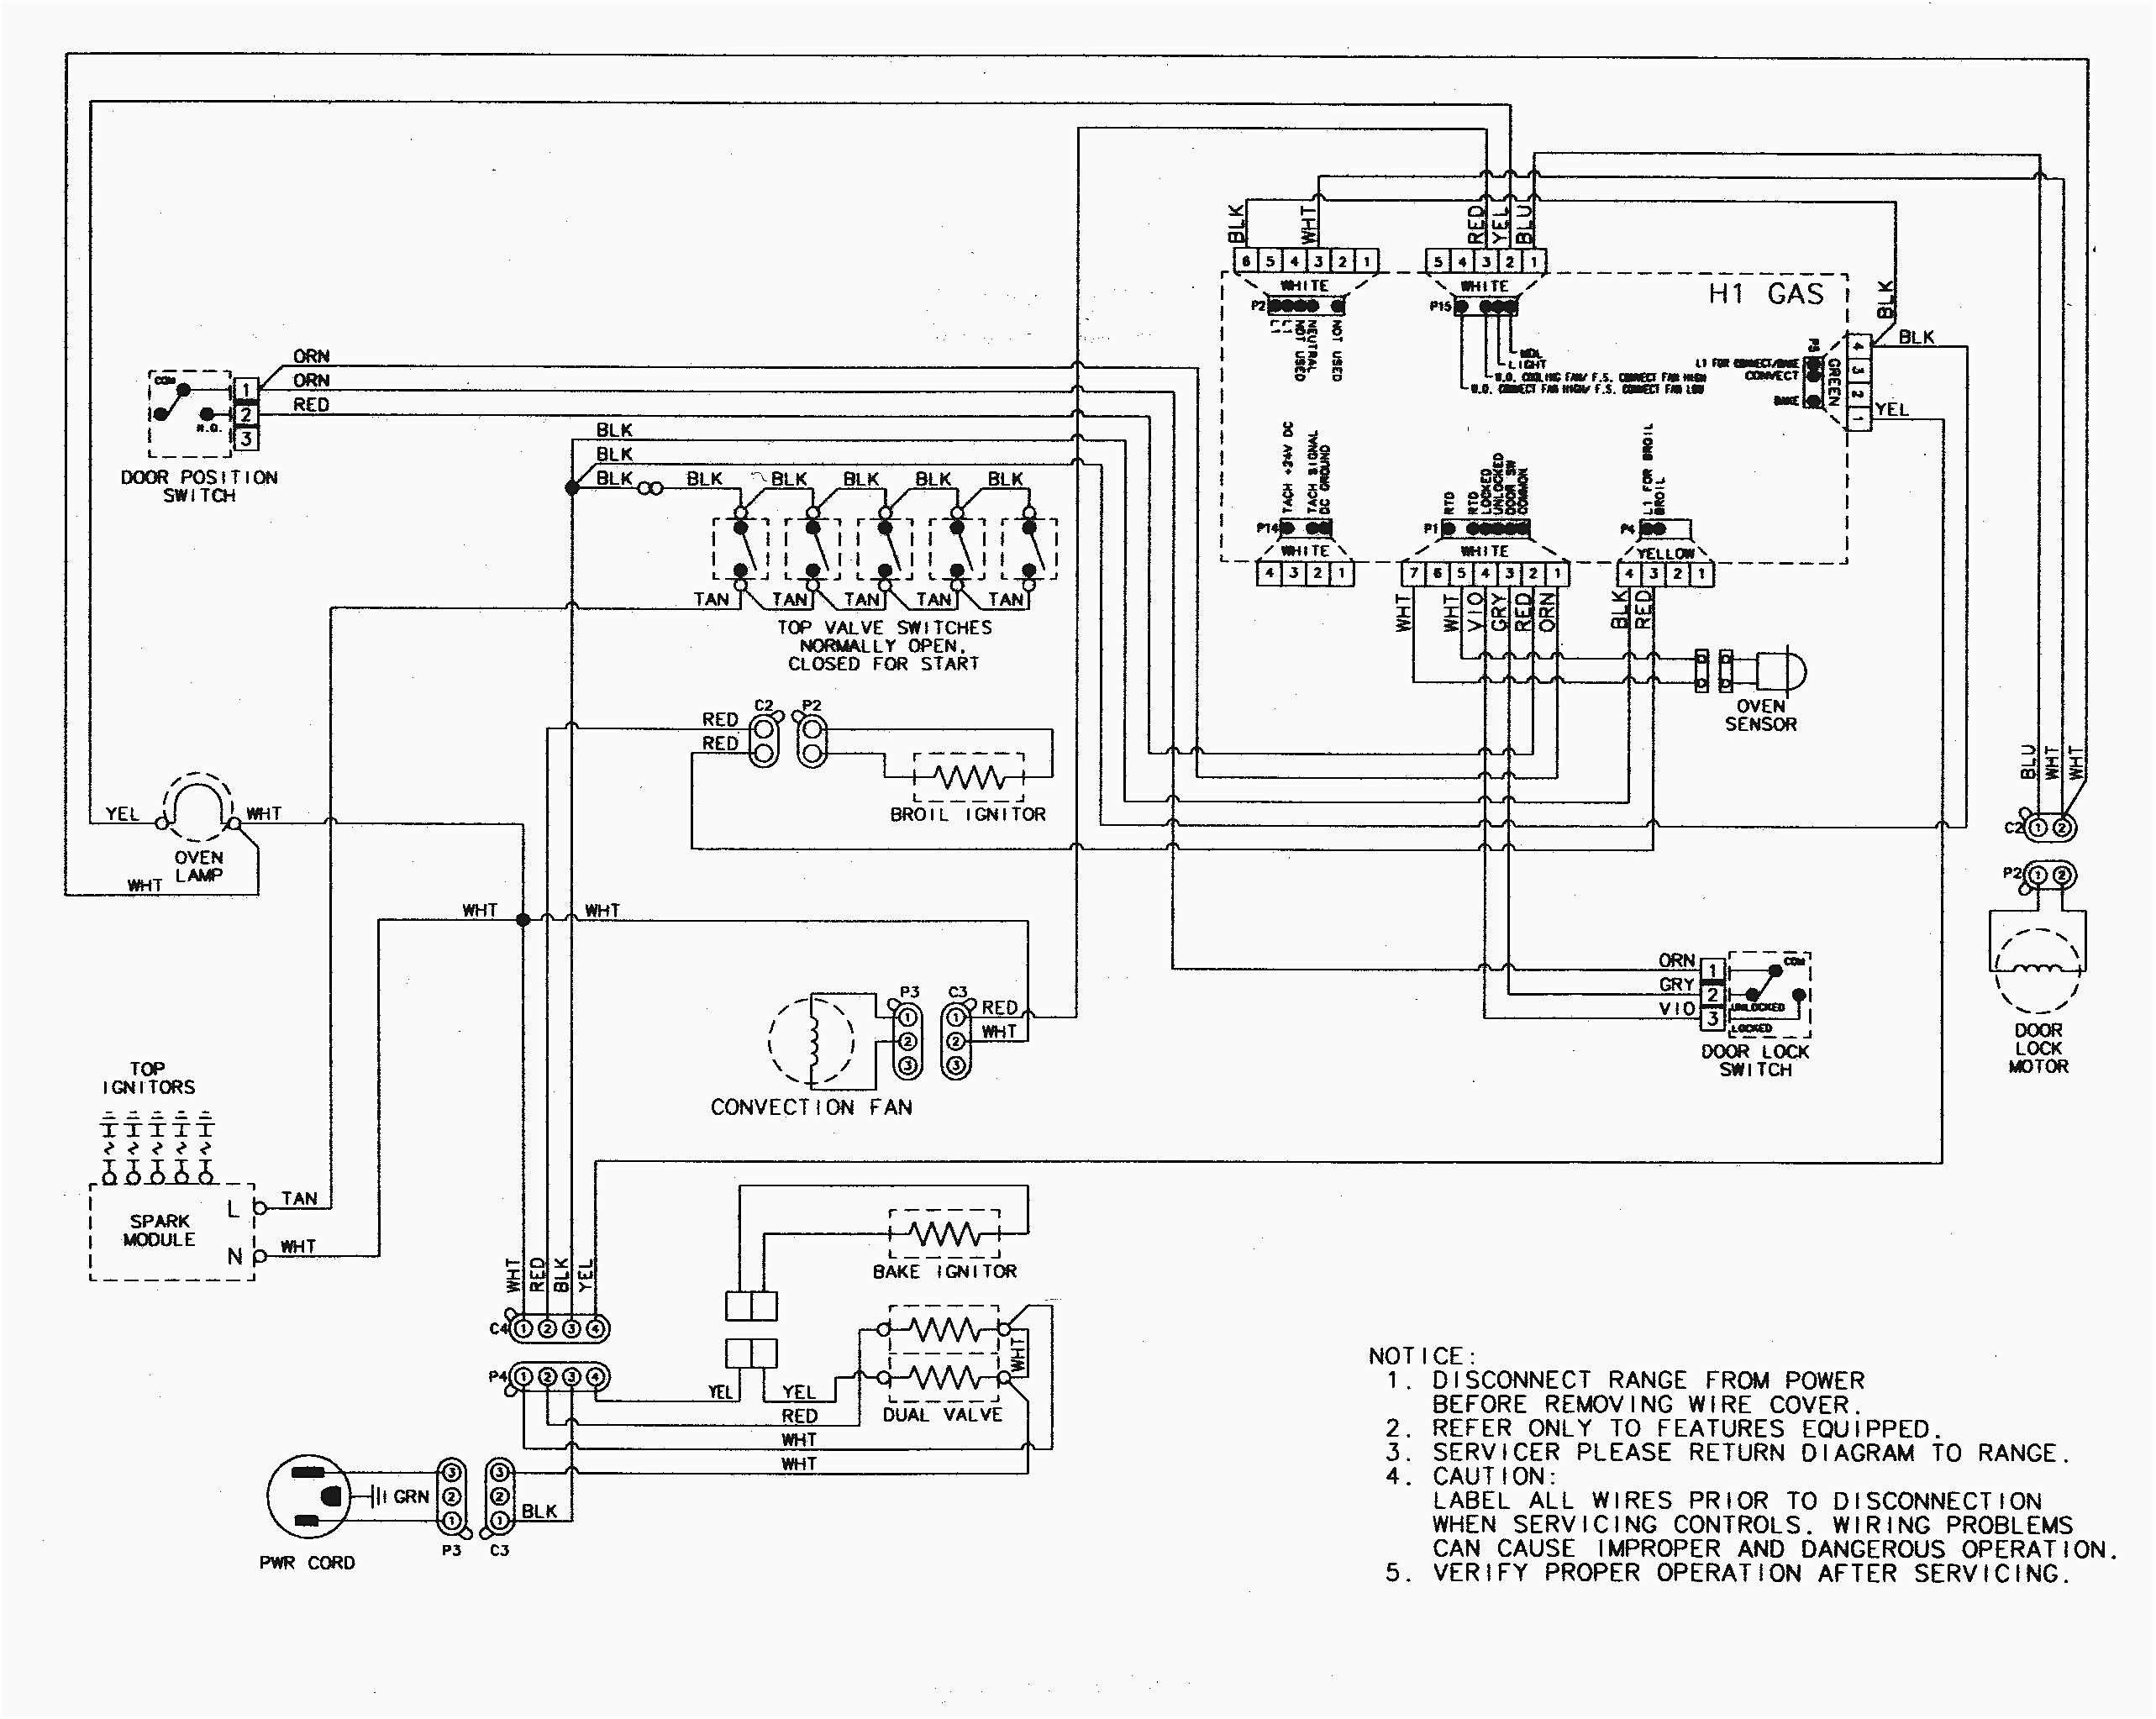 Unique Ge Garbage Disposal Wiring Diagram Diagram Diagramsample Diagramtemplate Wiringdiagram Diagramchart Wo Whirlpool Dryer Diagram Powder Coating Oven